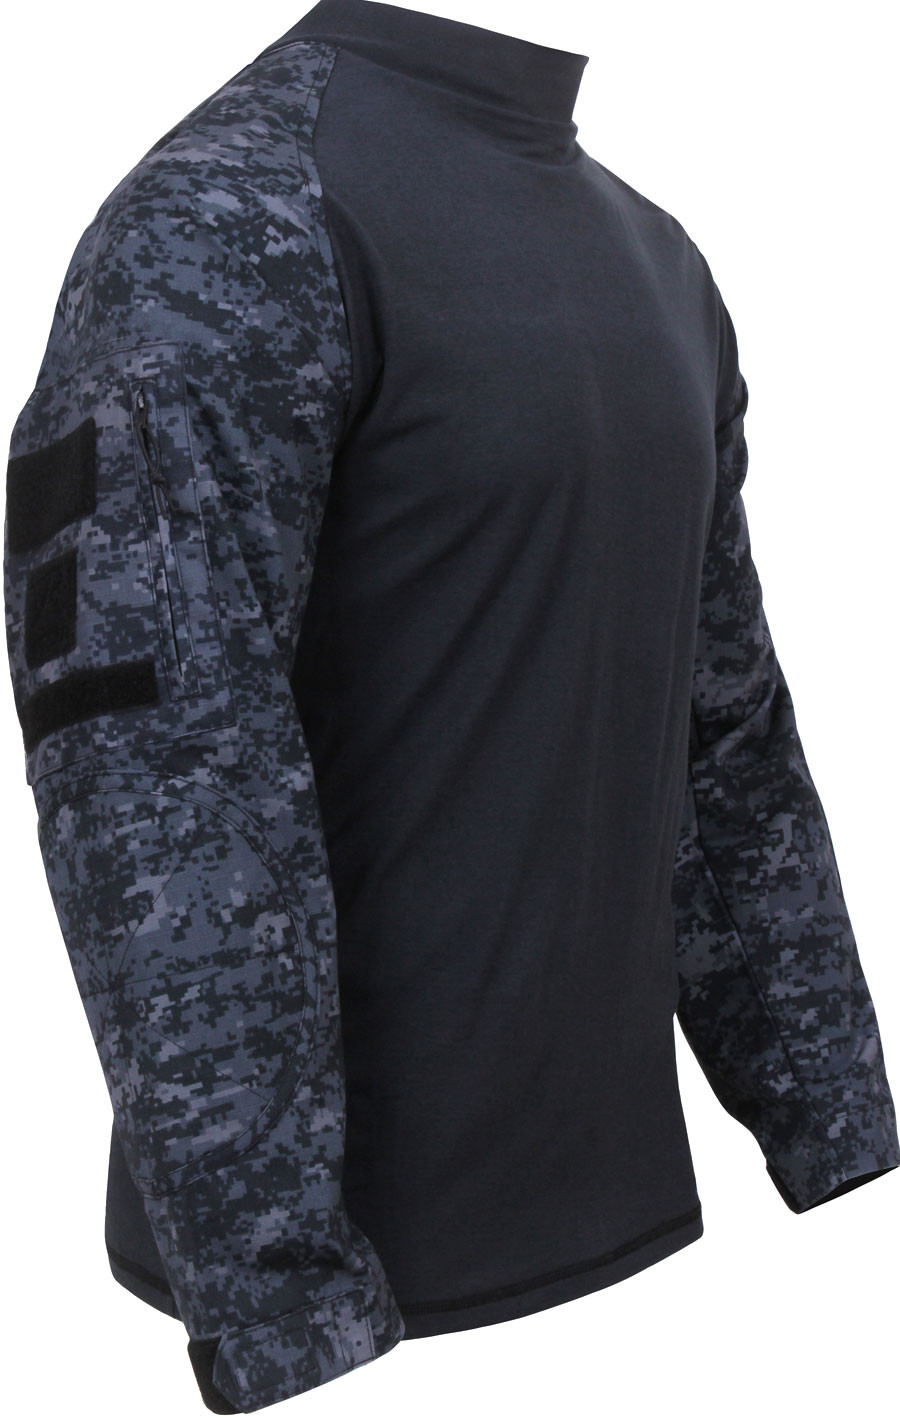 Midnight Digital Camouflage Military Long Sleeve Tactical Combat Shirt 45bb5973ed8